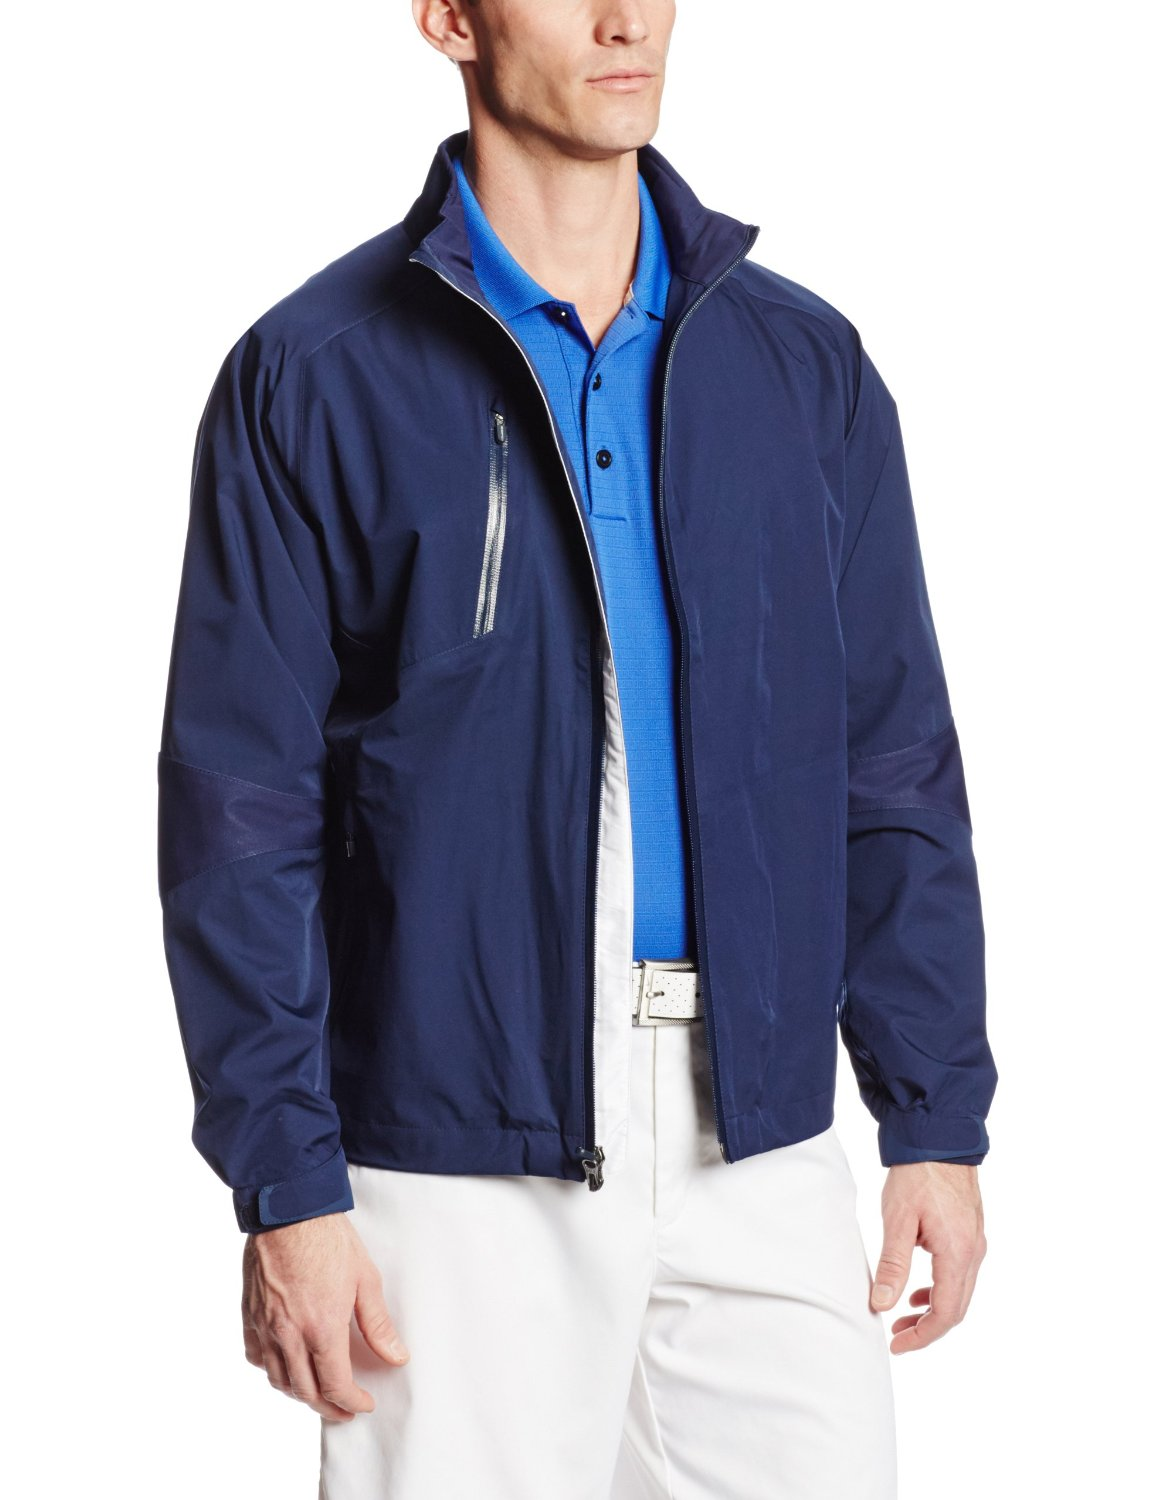 Mens Zero Restriction Pinnacle Golf Rain Jackets